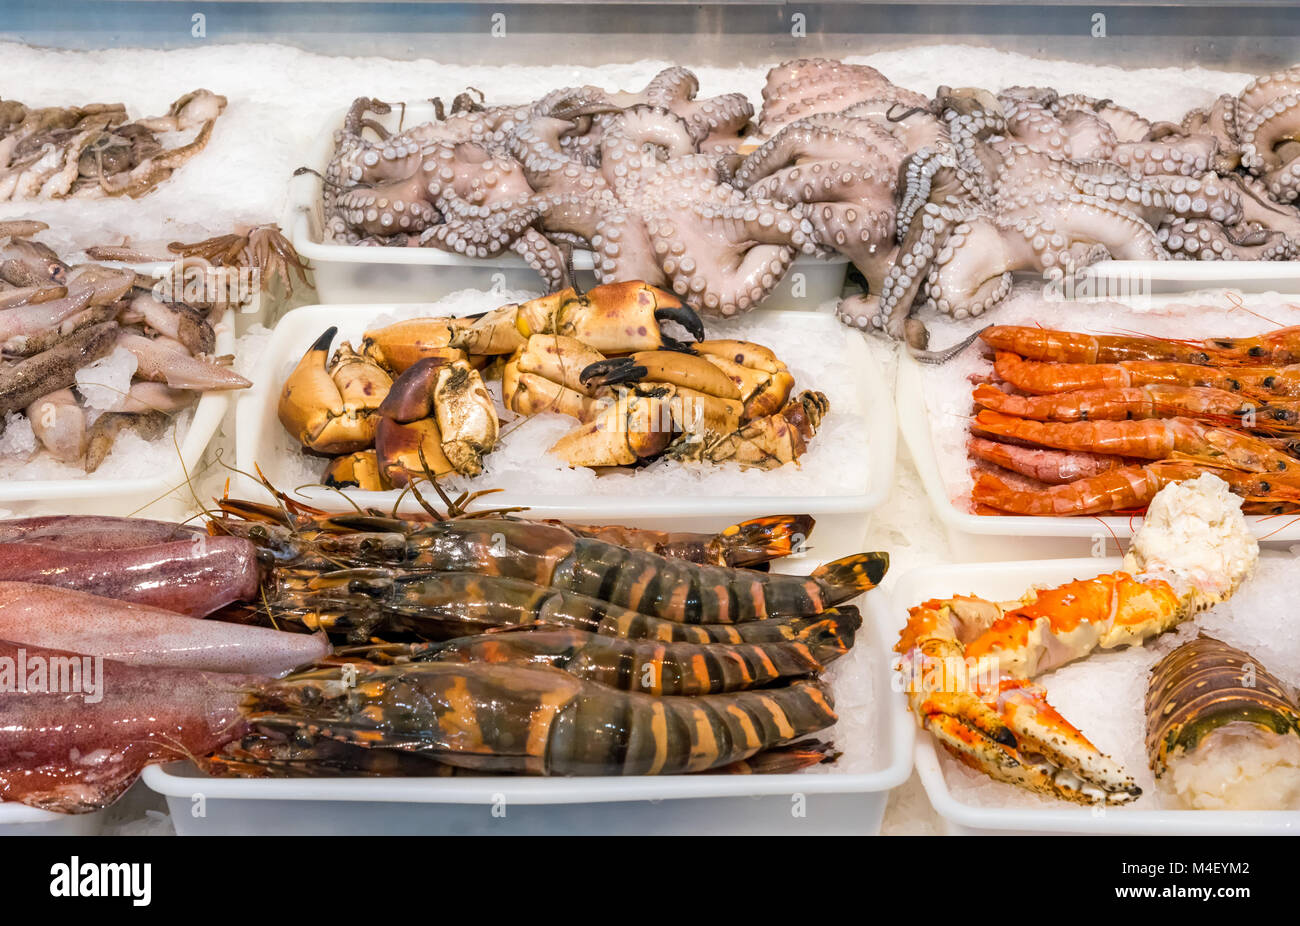 Seafood For Sale Stock Photos & Seafood For Sale Stock Images - Alamy